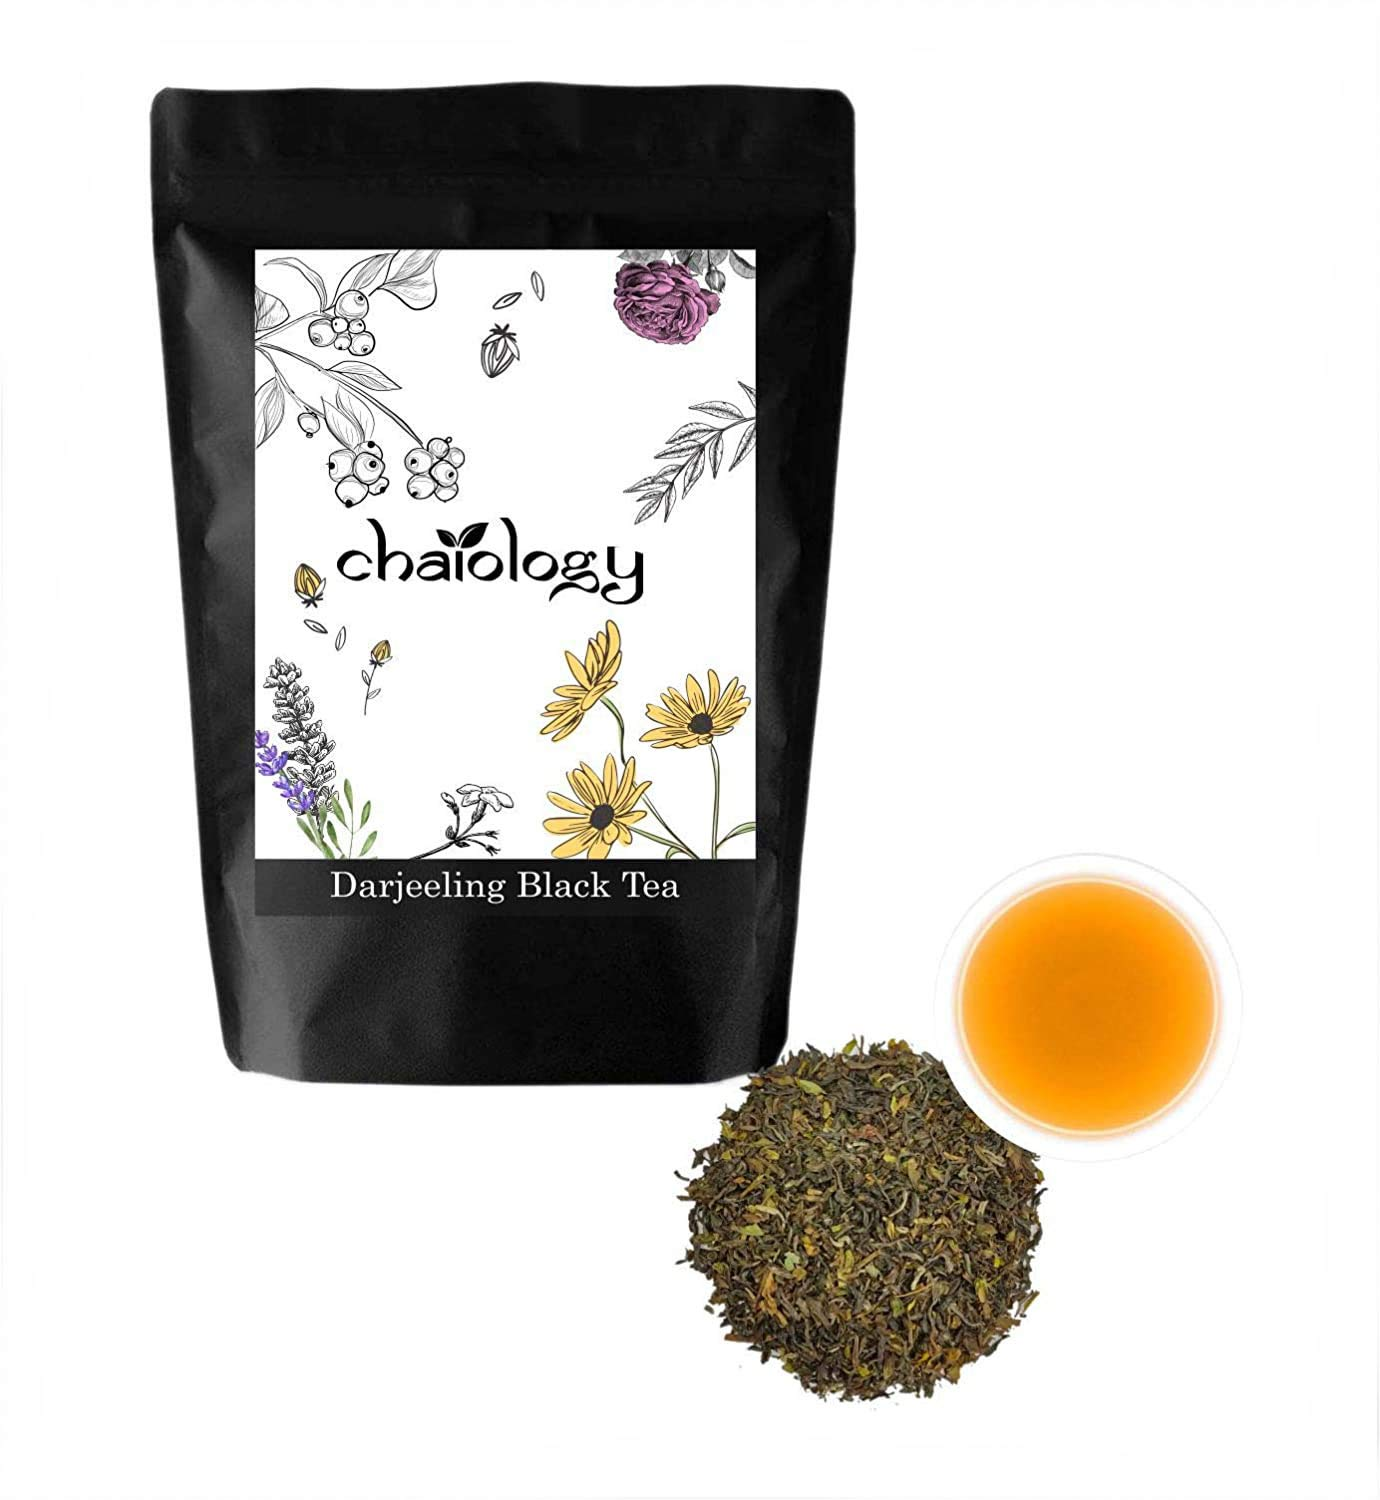 Chaiology Darjeeling Whole Leaf Black Tea, 50g (36 Cups)